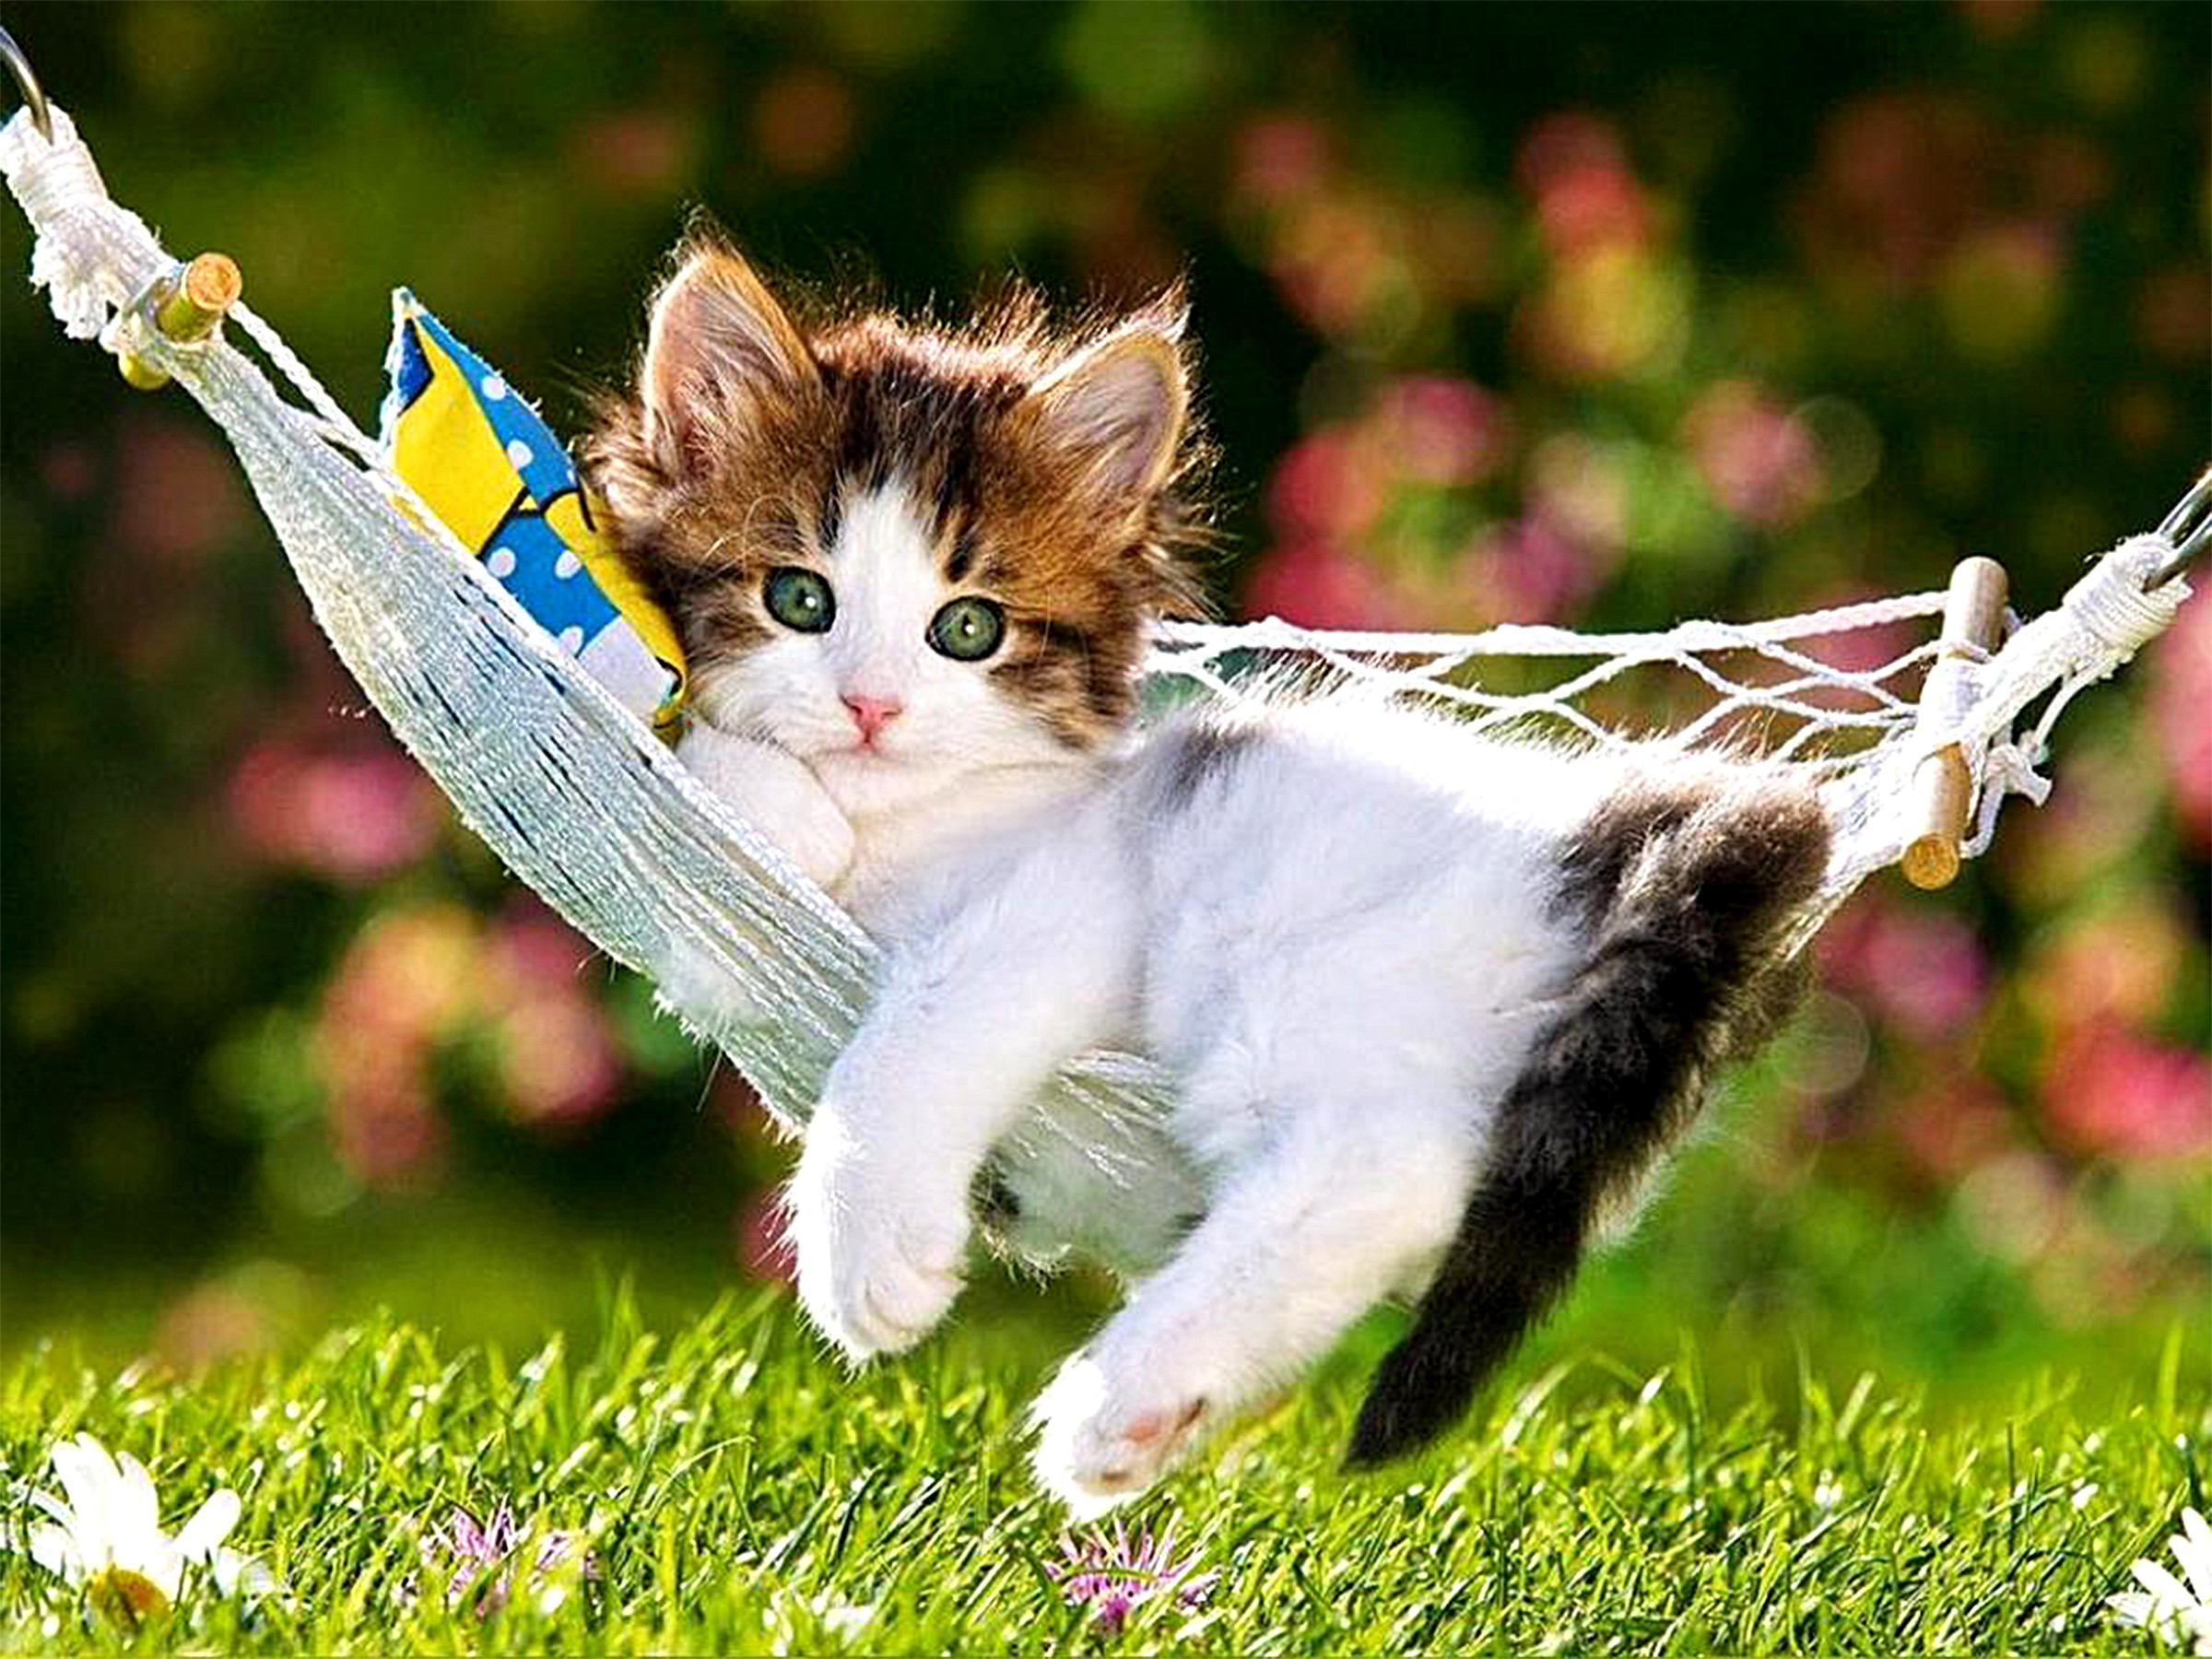 Baby kittens wallpaper 63 images 1920x1080 cute kitten wallpapers wallpaper free download thecheapjerseys Choice Image